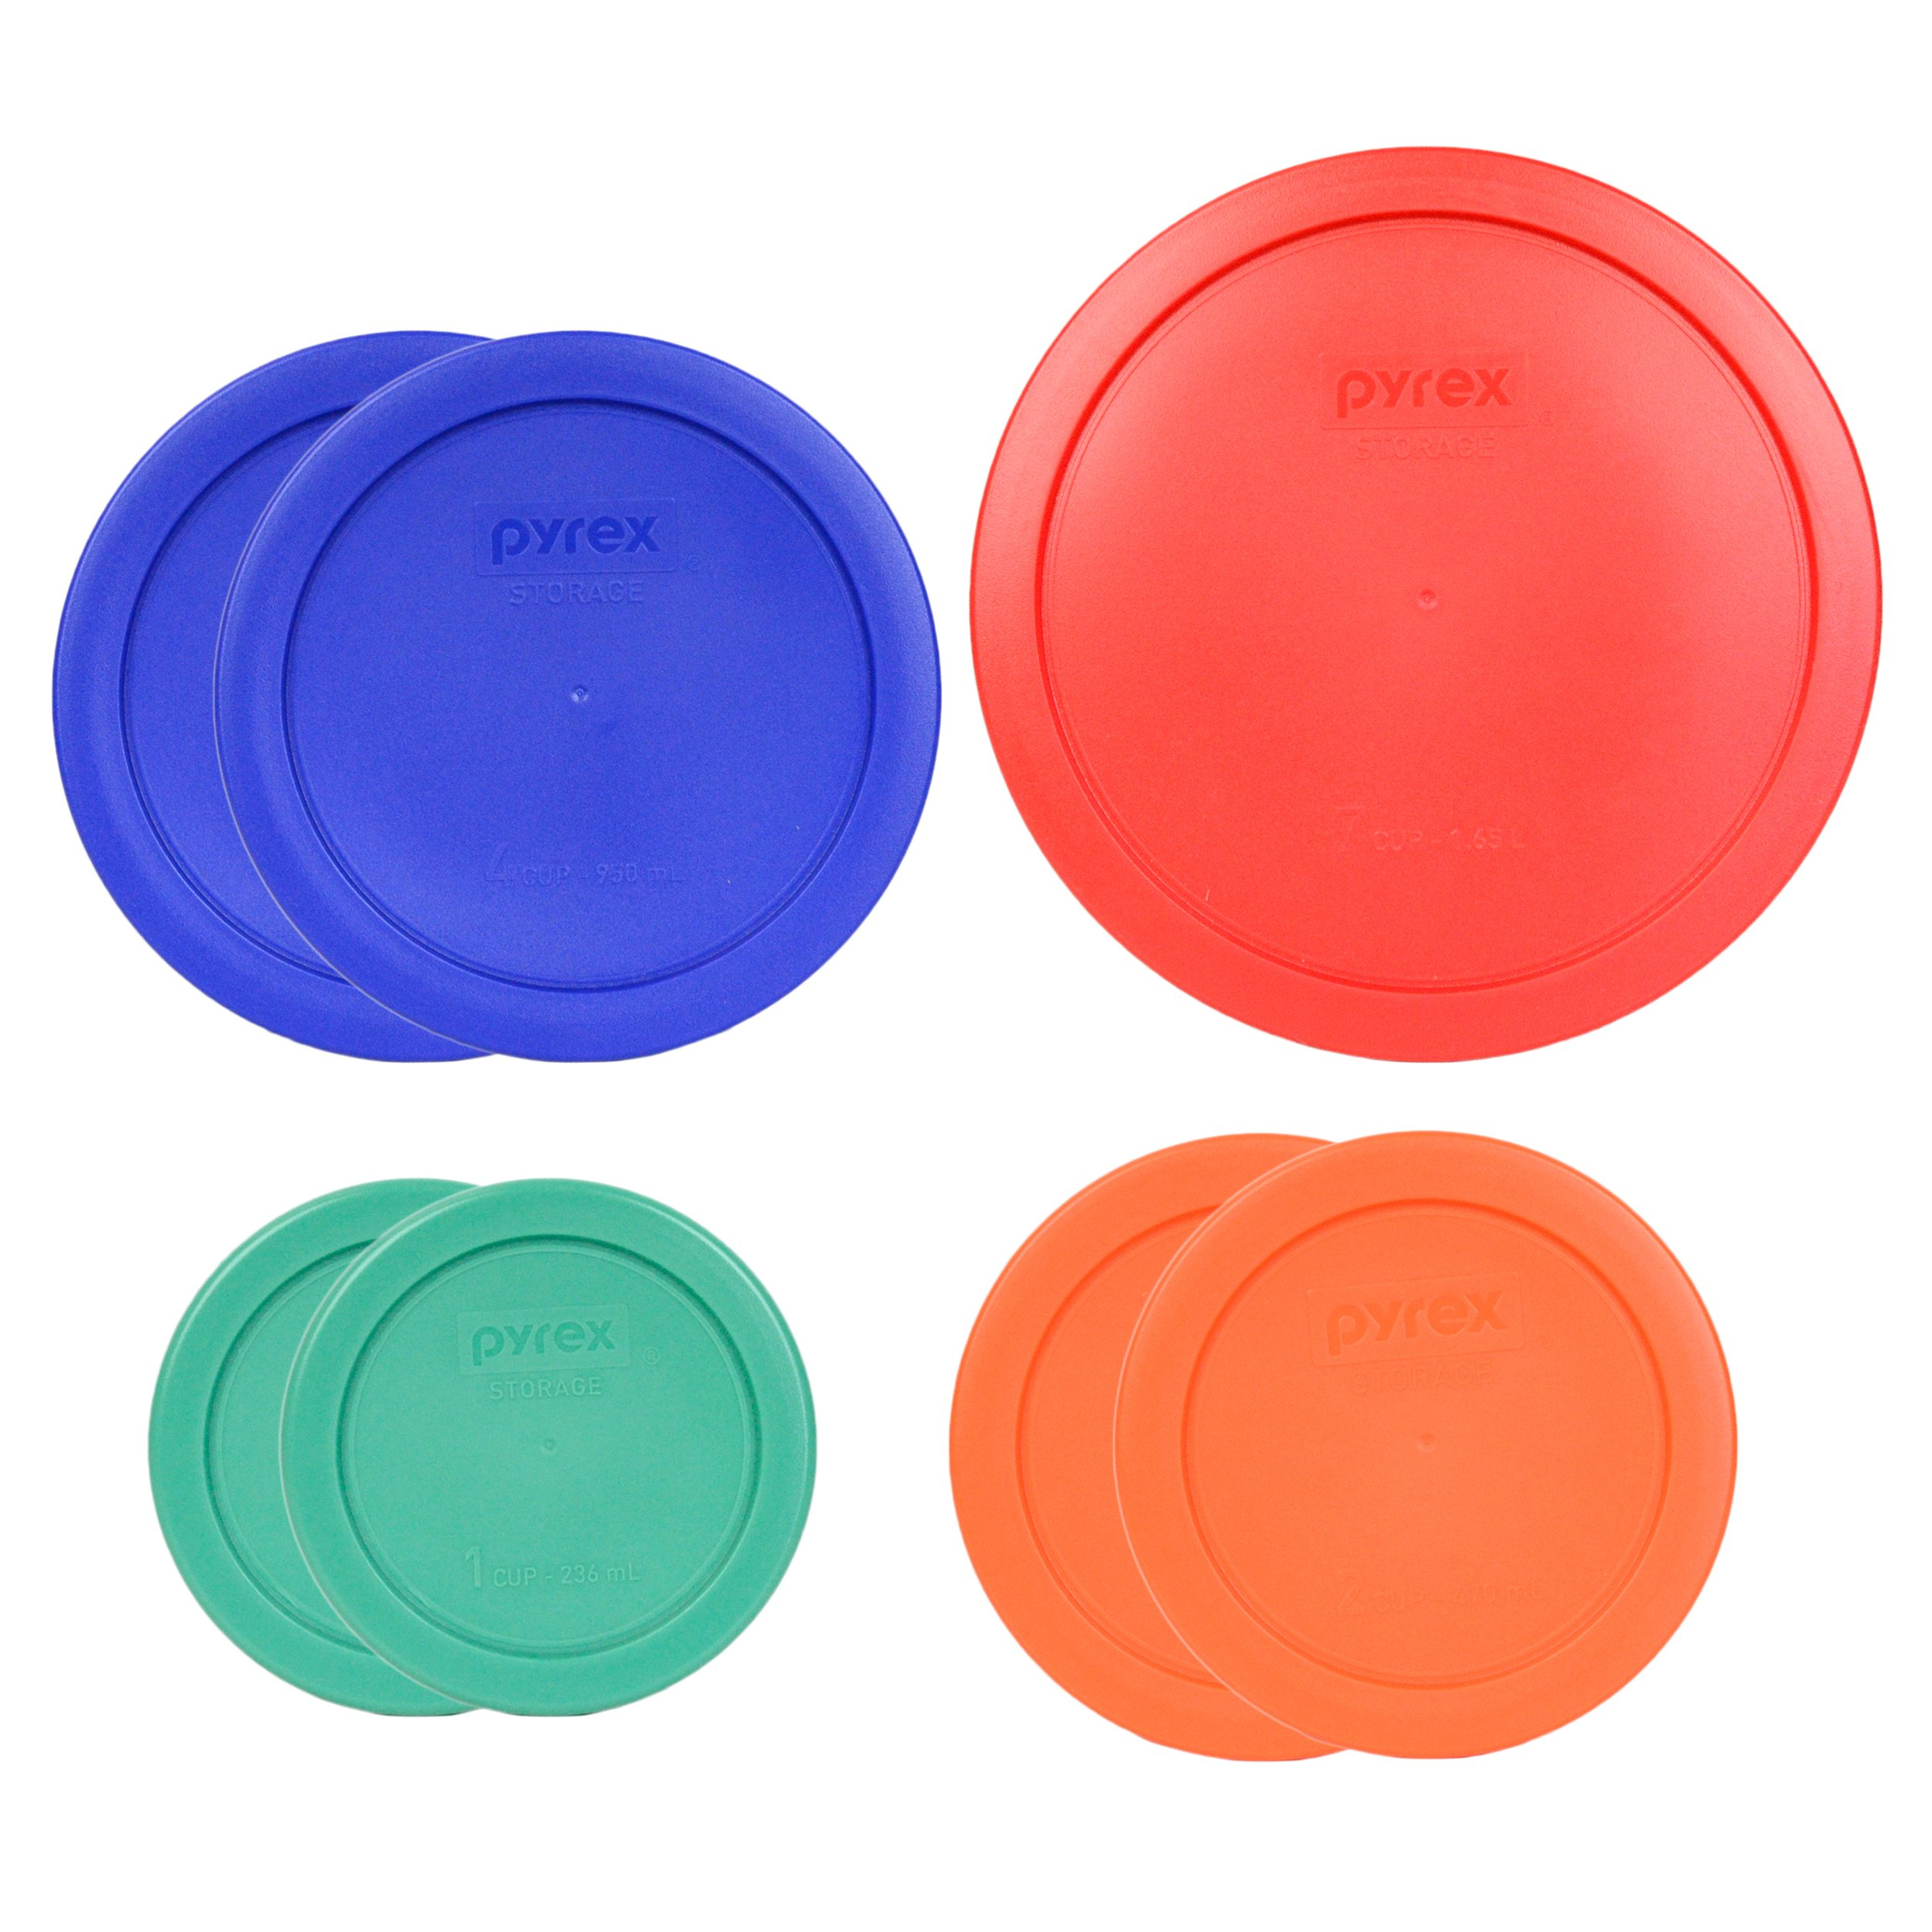 Pyrex (1) 7402-PC 6/7 Cup Red (2) 7201-PC 4 Cup Cobalt Blue (2) 7200-PC 2 Cup Orange (2) 7202-PC 1 Cup Green Food Storage Lids - 7 Pack by Pyrex